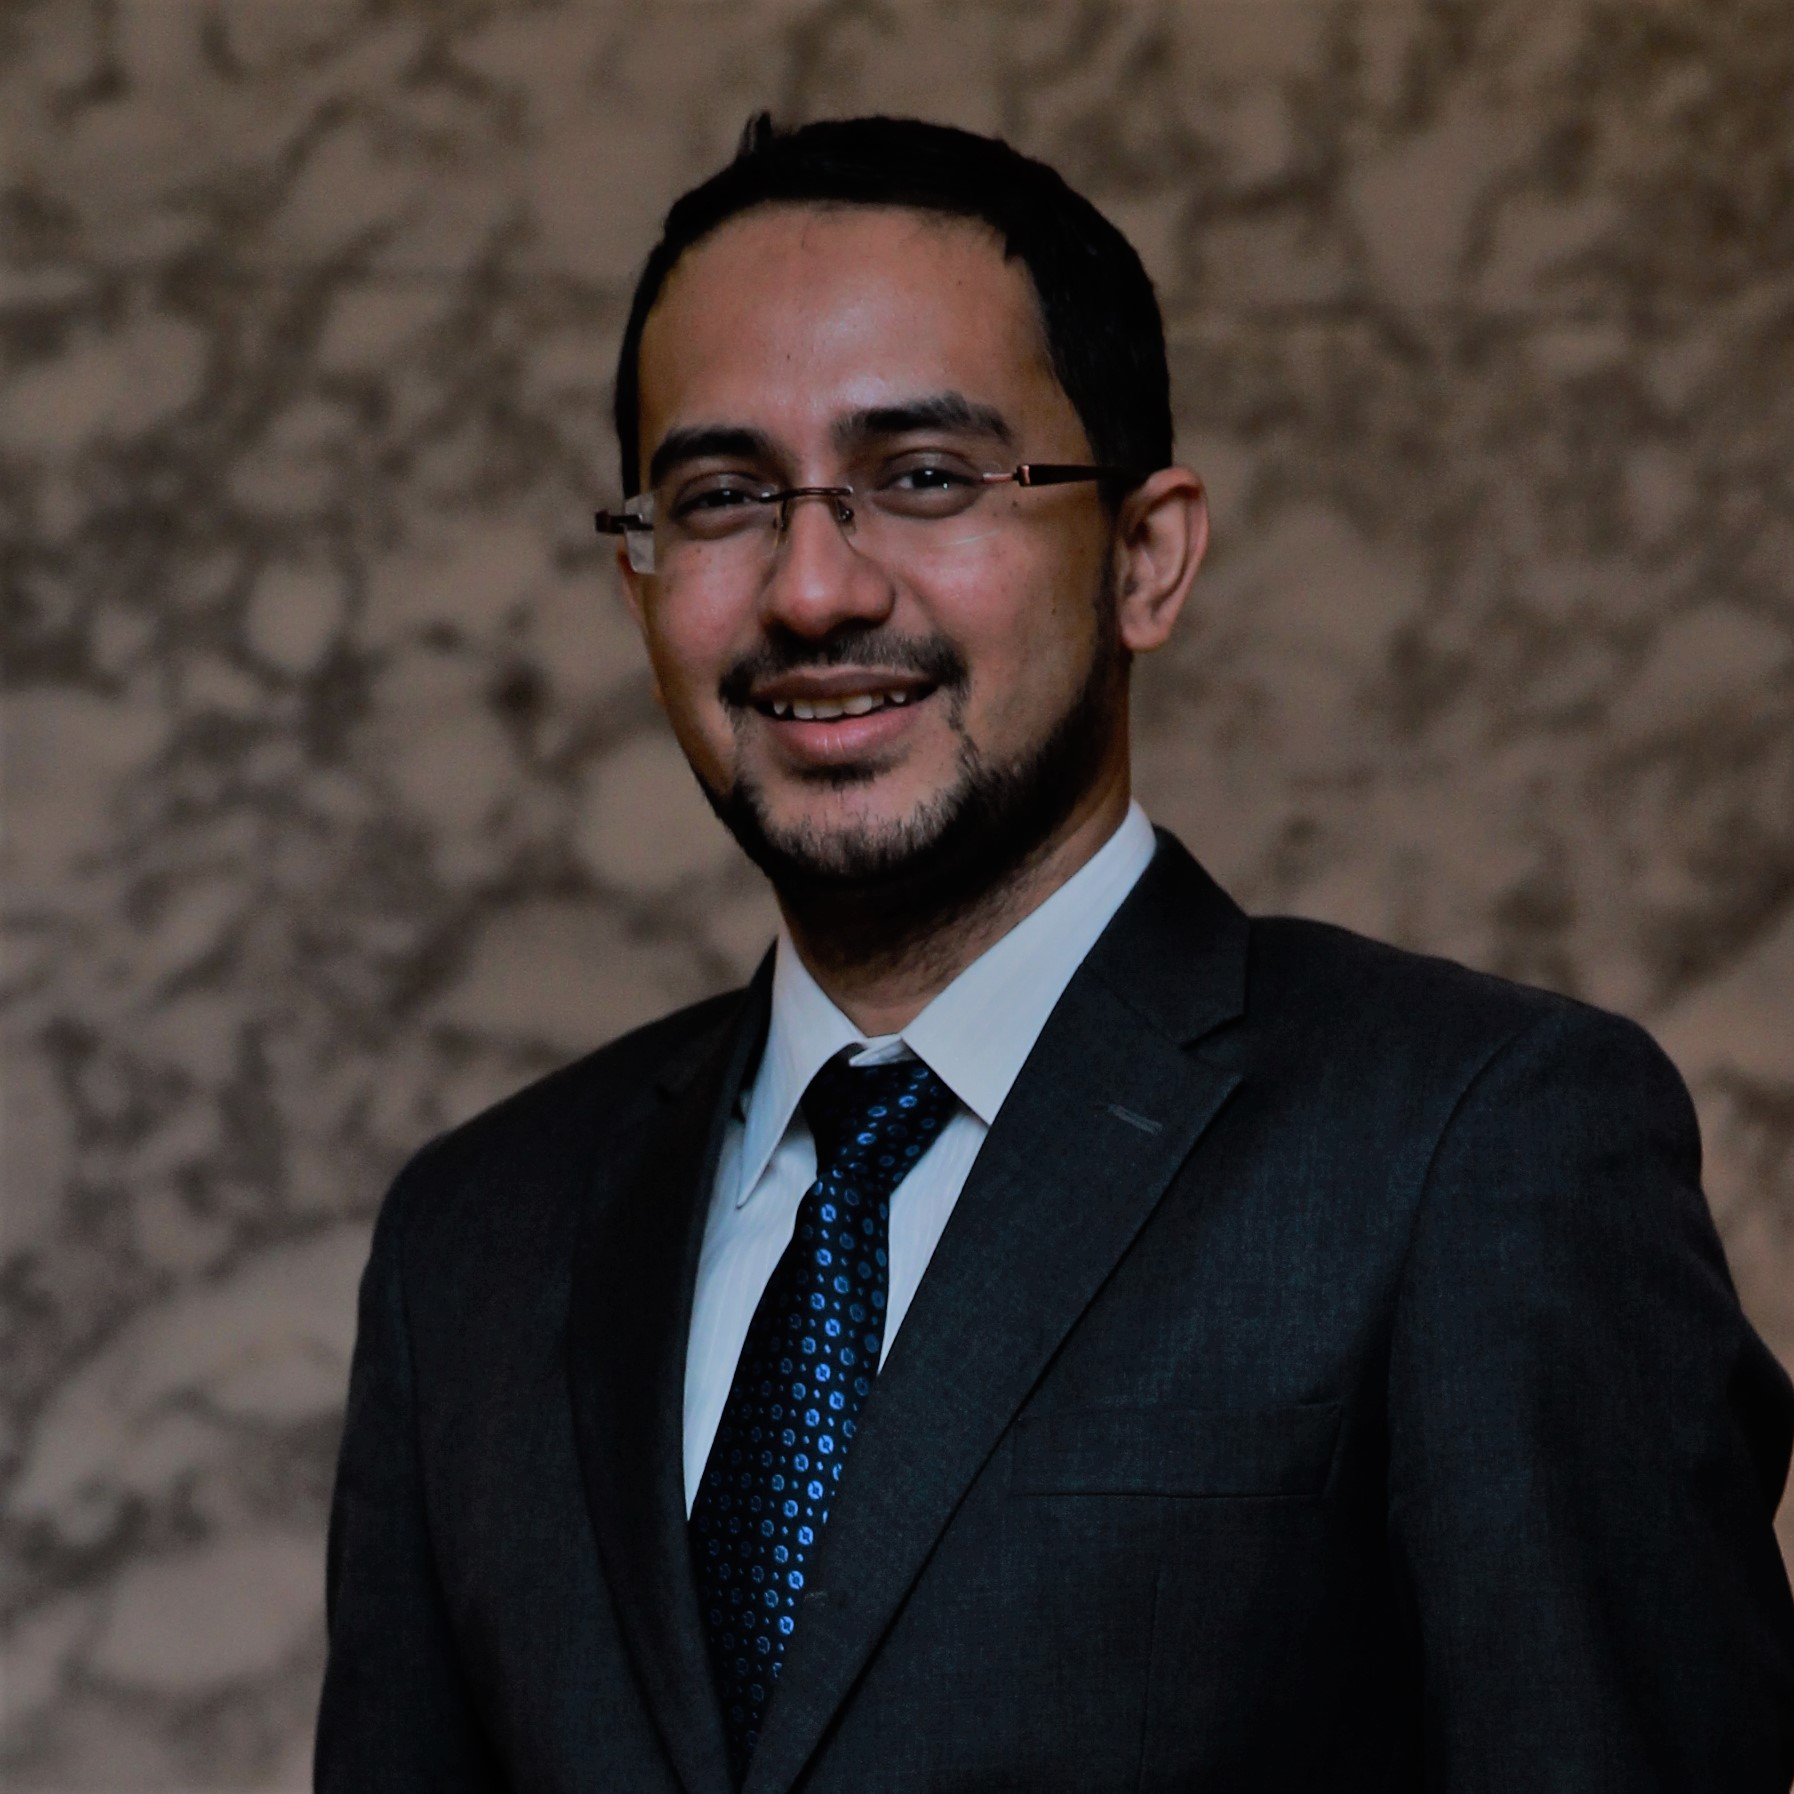 Tausif Ishtiaque, Project Leader at The Boston Consulting Group